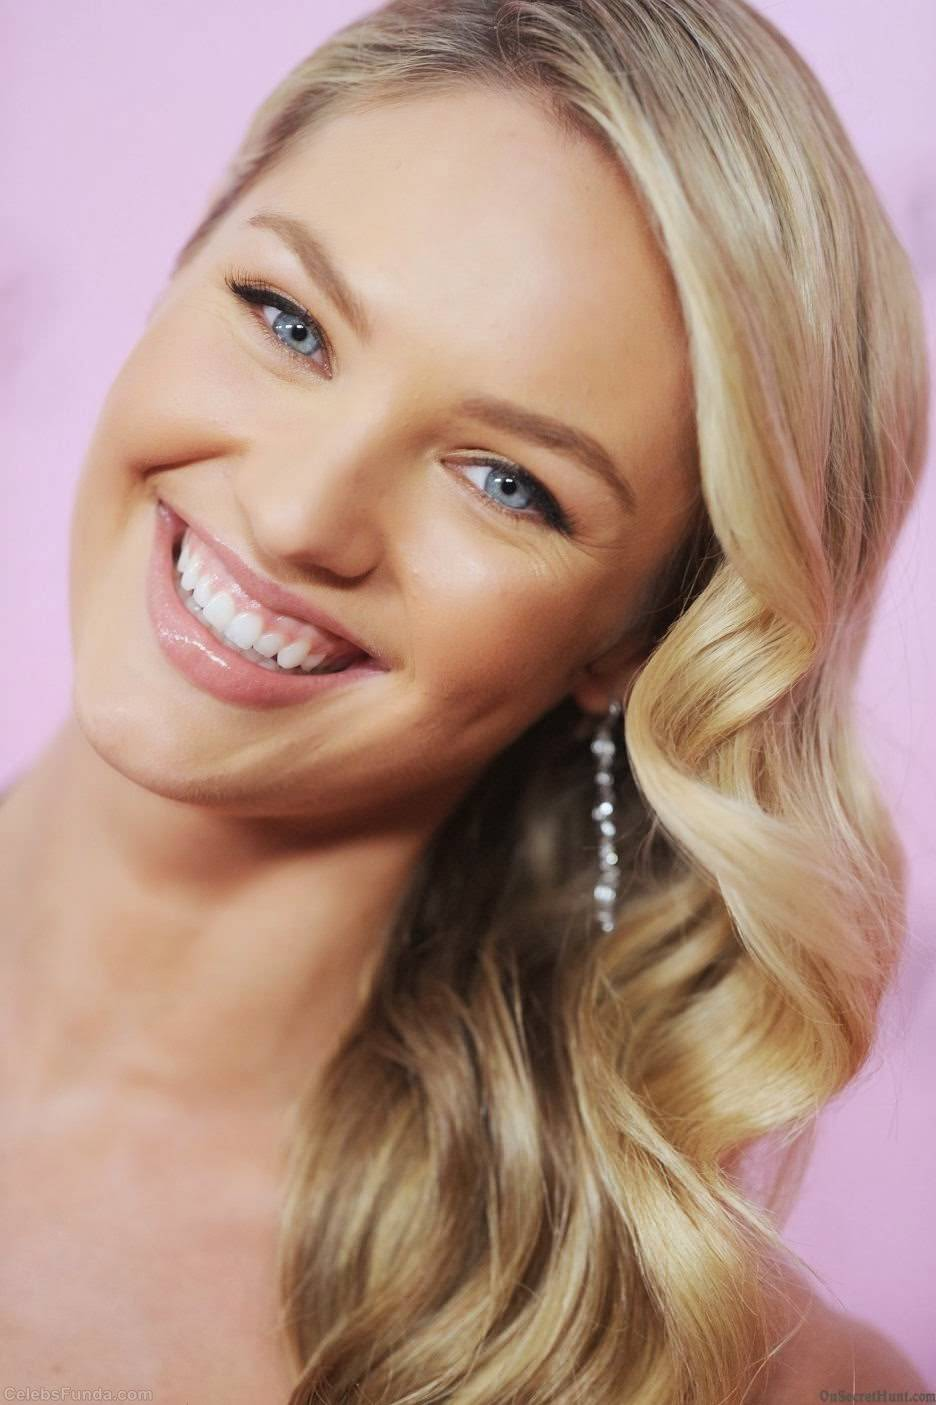 Candice Swanepoel Smiling Portraits 25jpg